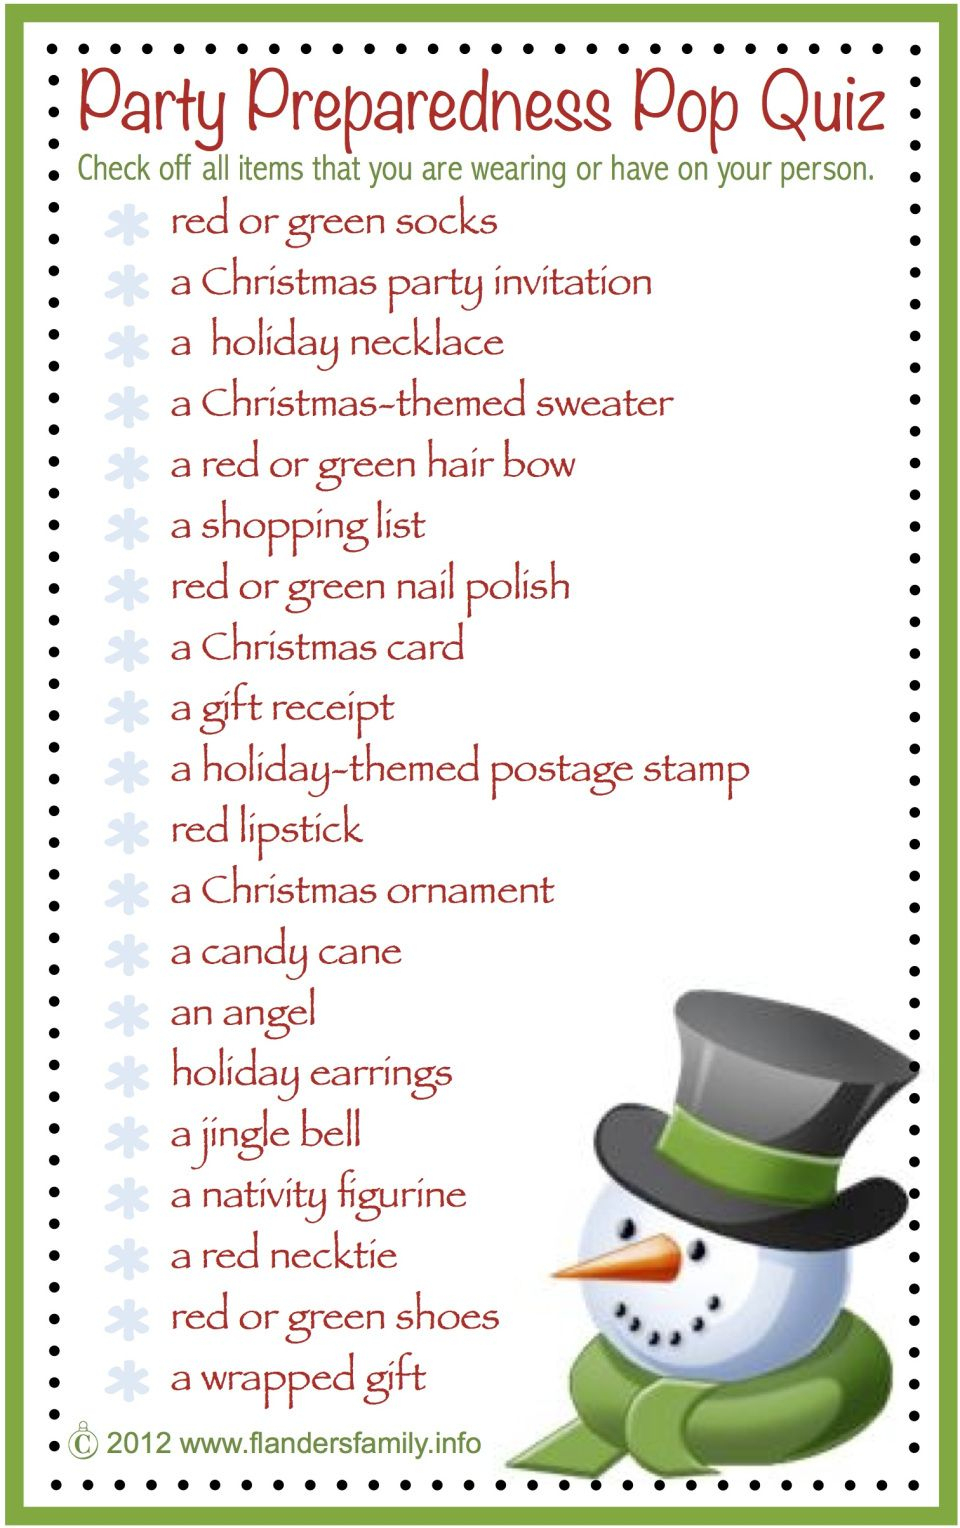 This Site Has Lots Of Free Printable Party Games And Activities For - Holiday Office Party Games Free Printable